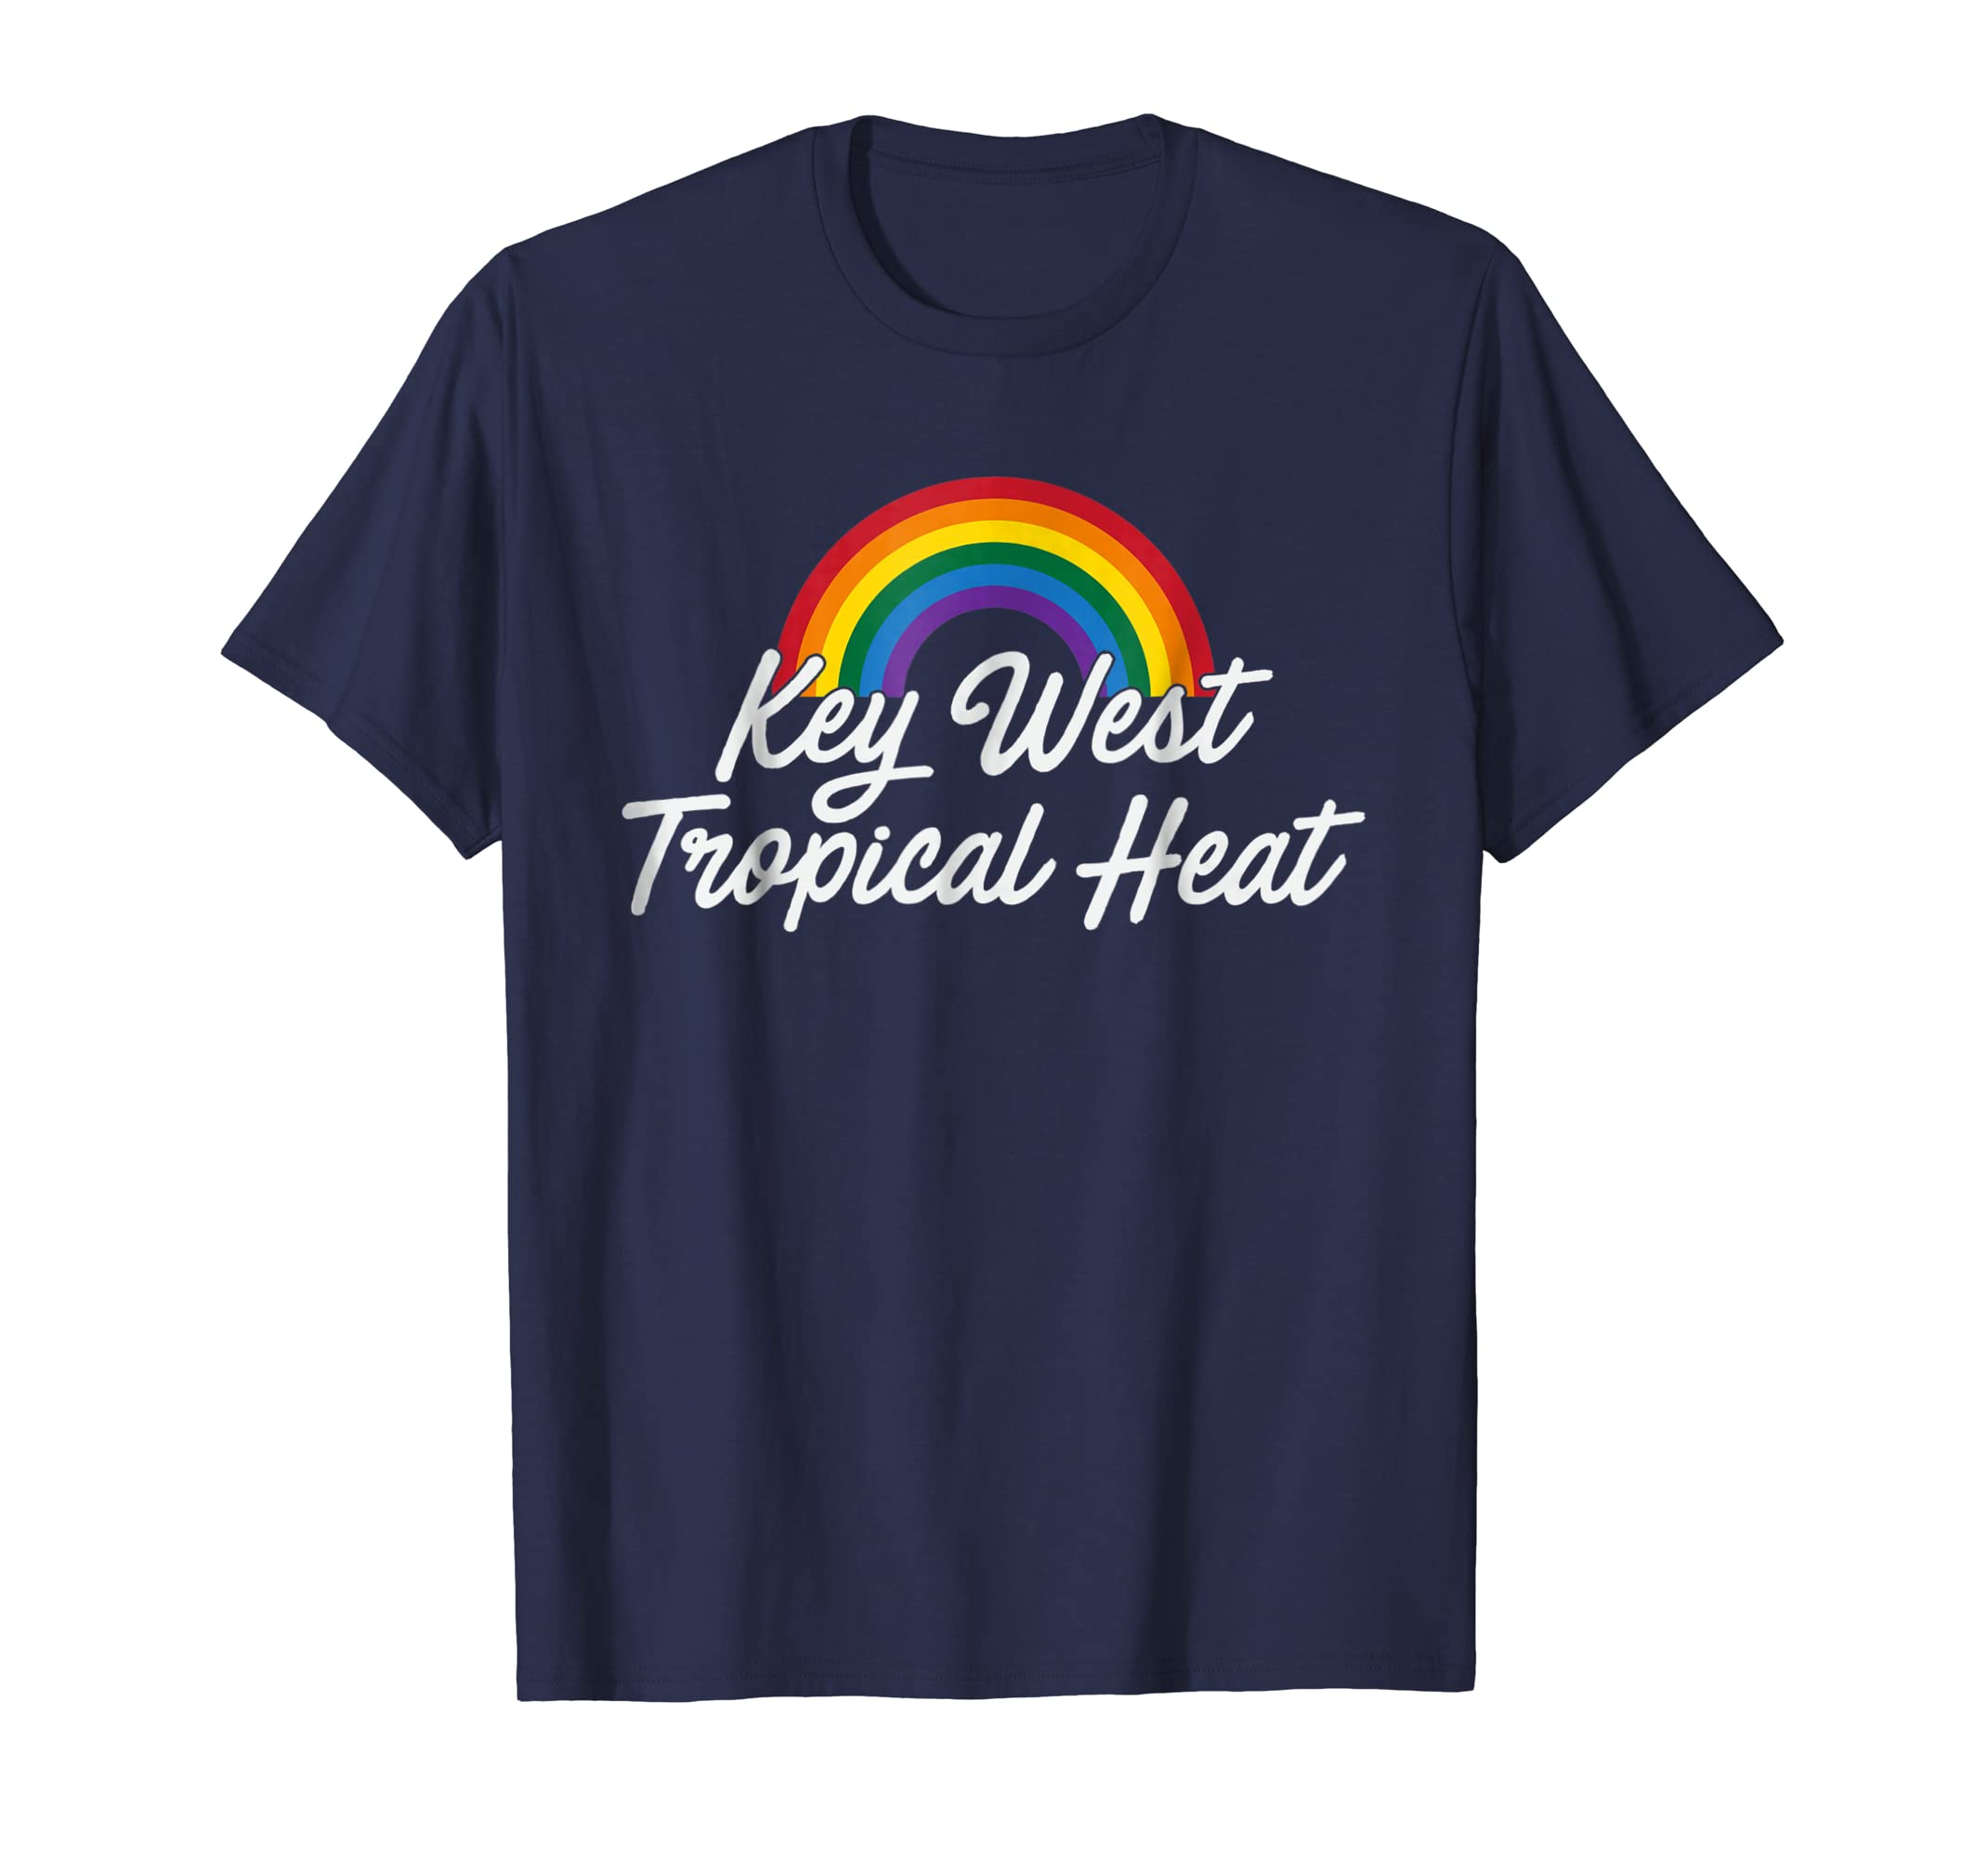 Amazon.com: Key West Tropical Heat Pride Gay Pride Shirt(gay flag shirt): Clothing